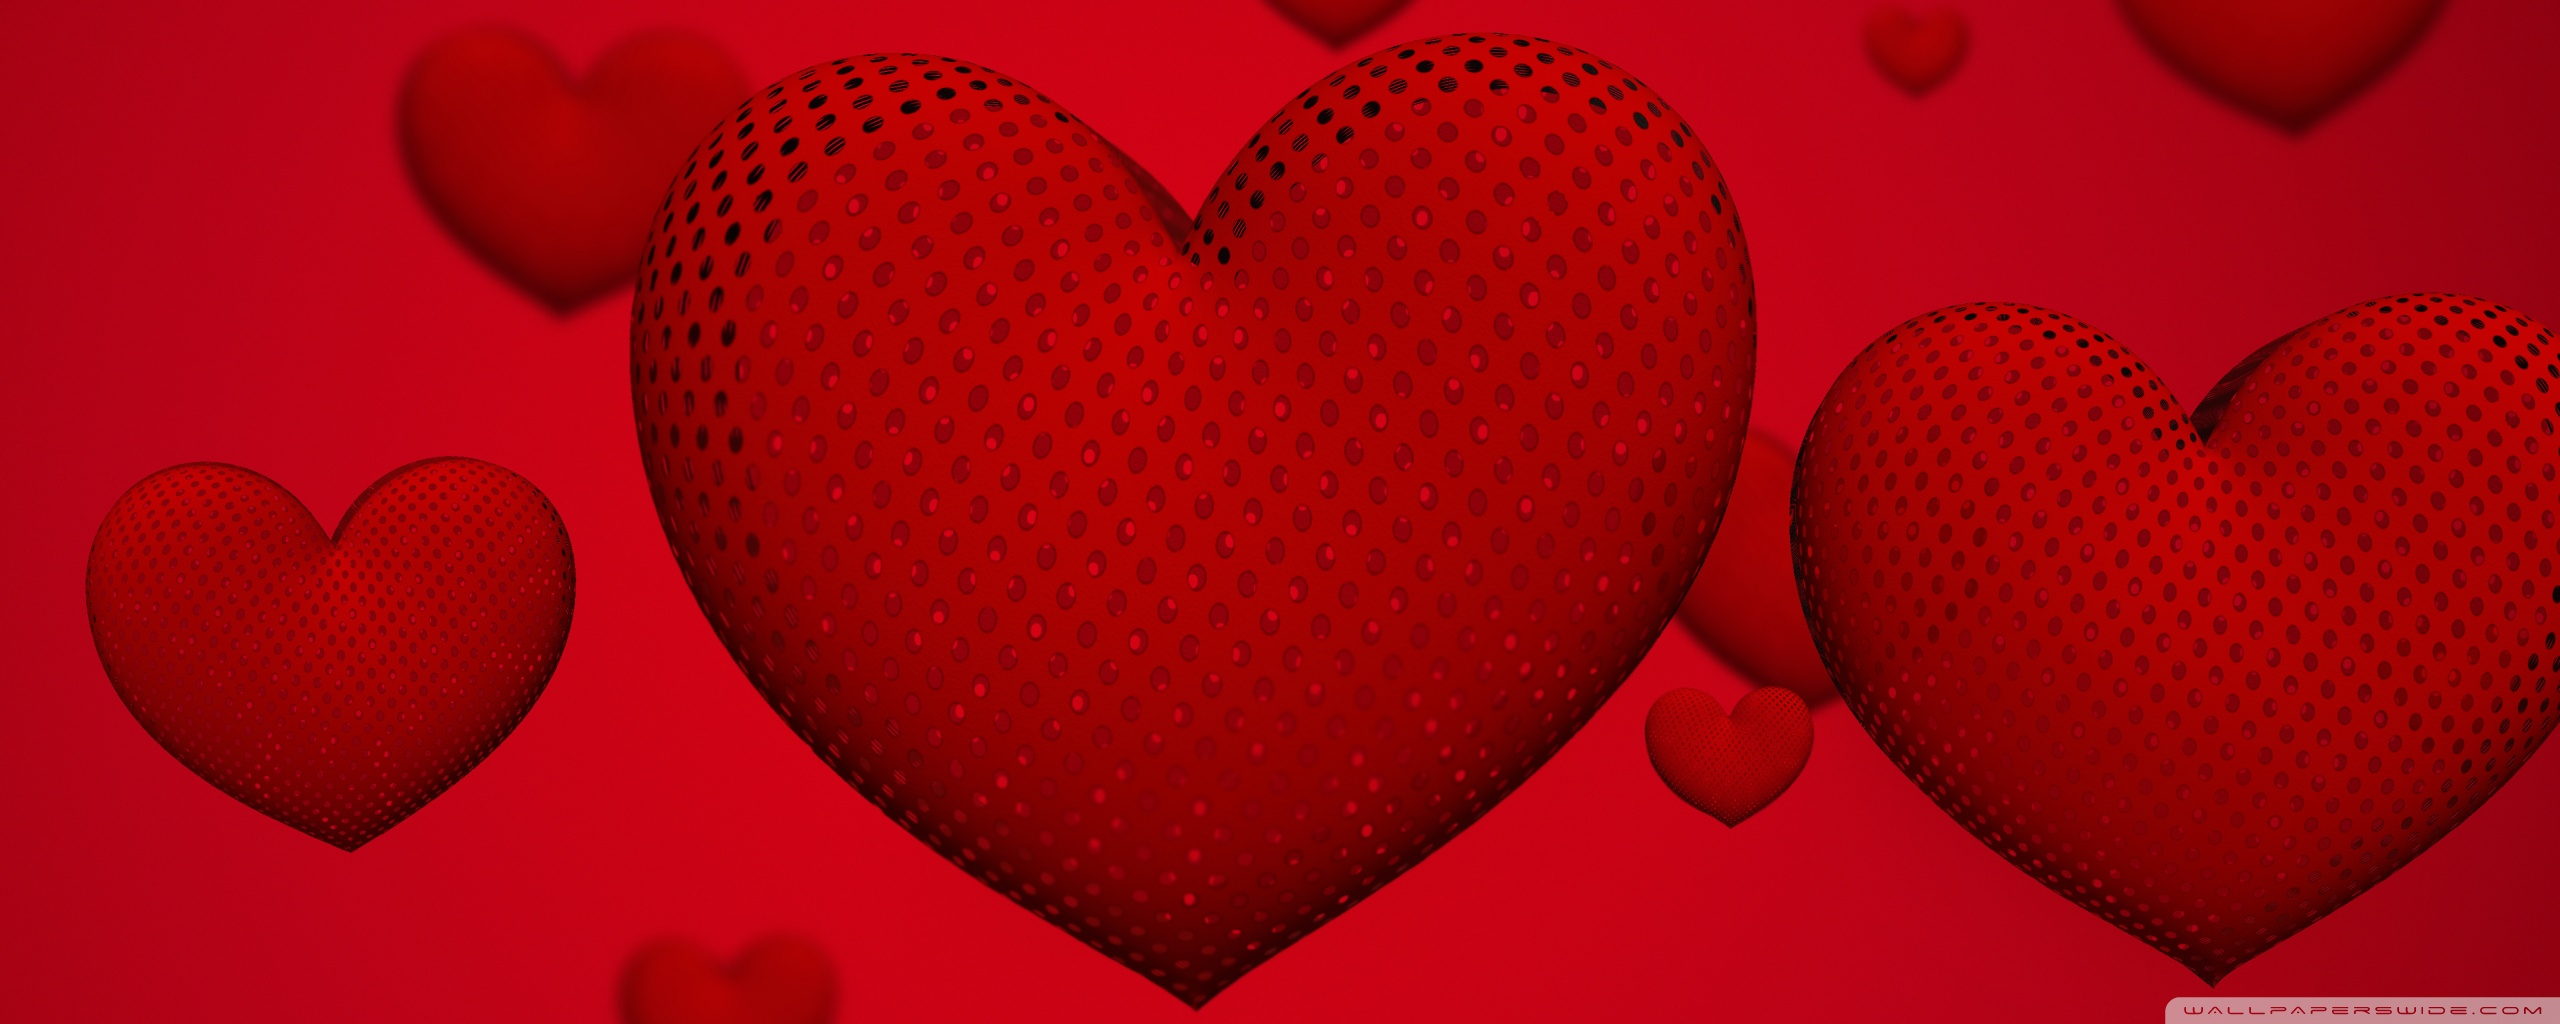 Valentines Day Hearts Ultra HD Desktop Background Wallpaper for 2560x1024